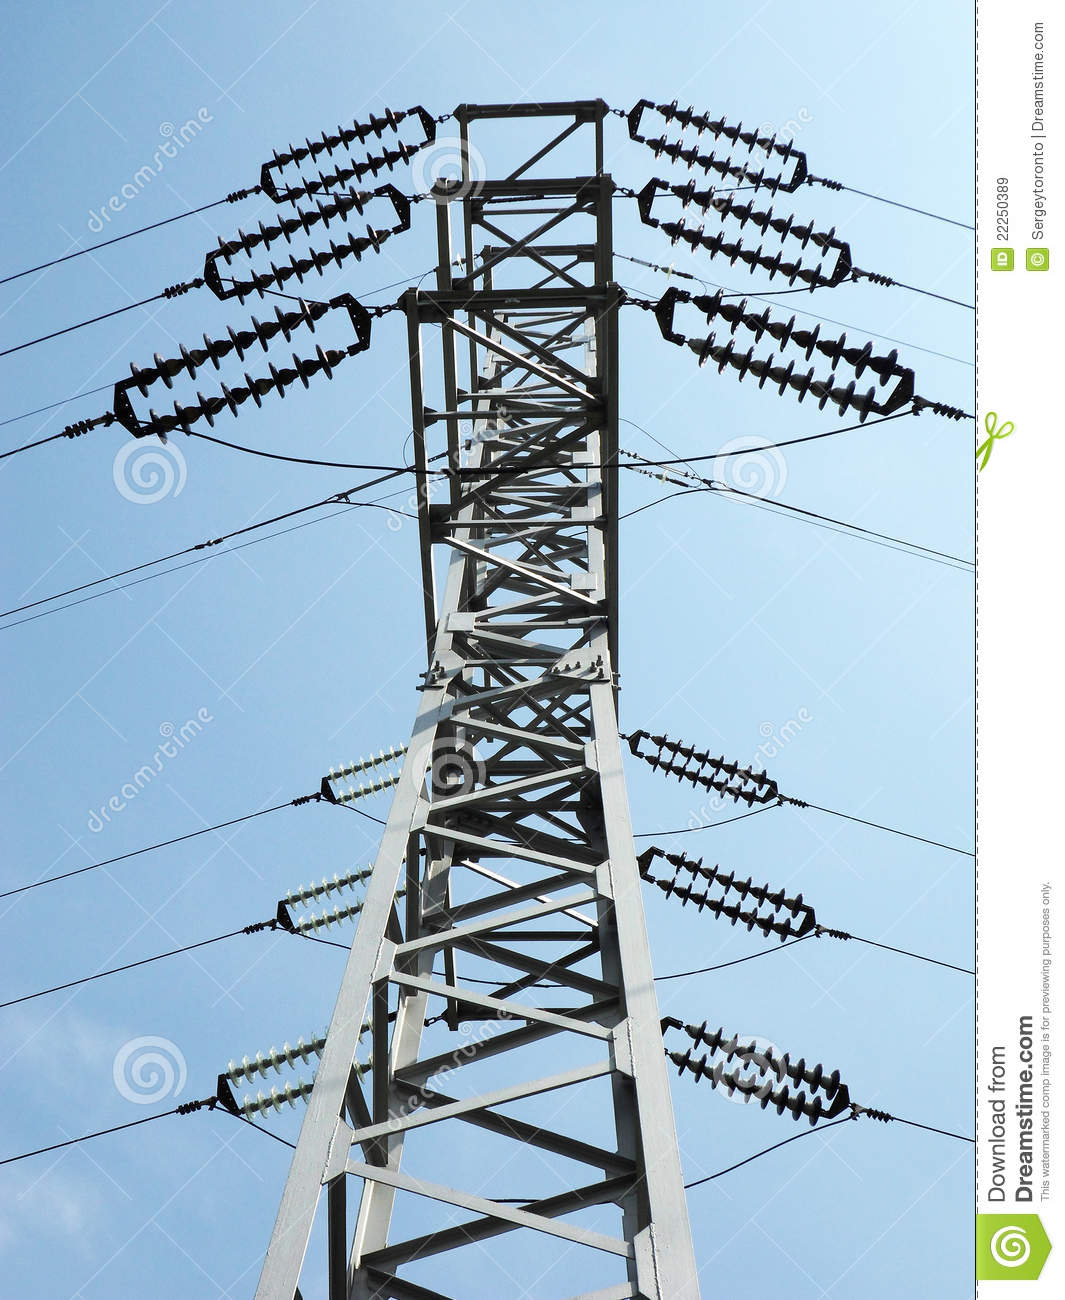 Electric column stock image. Image of industry ...